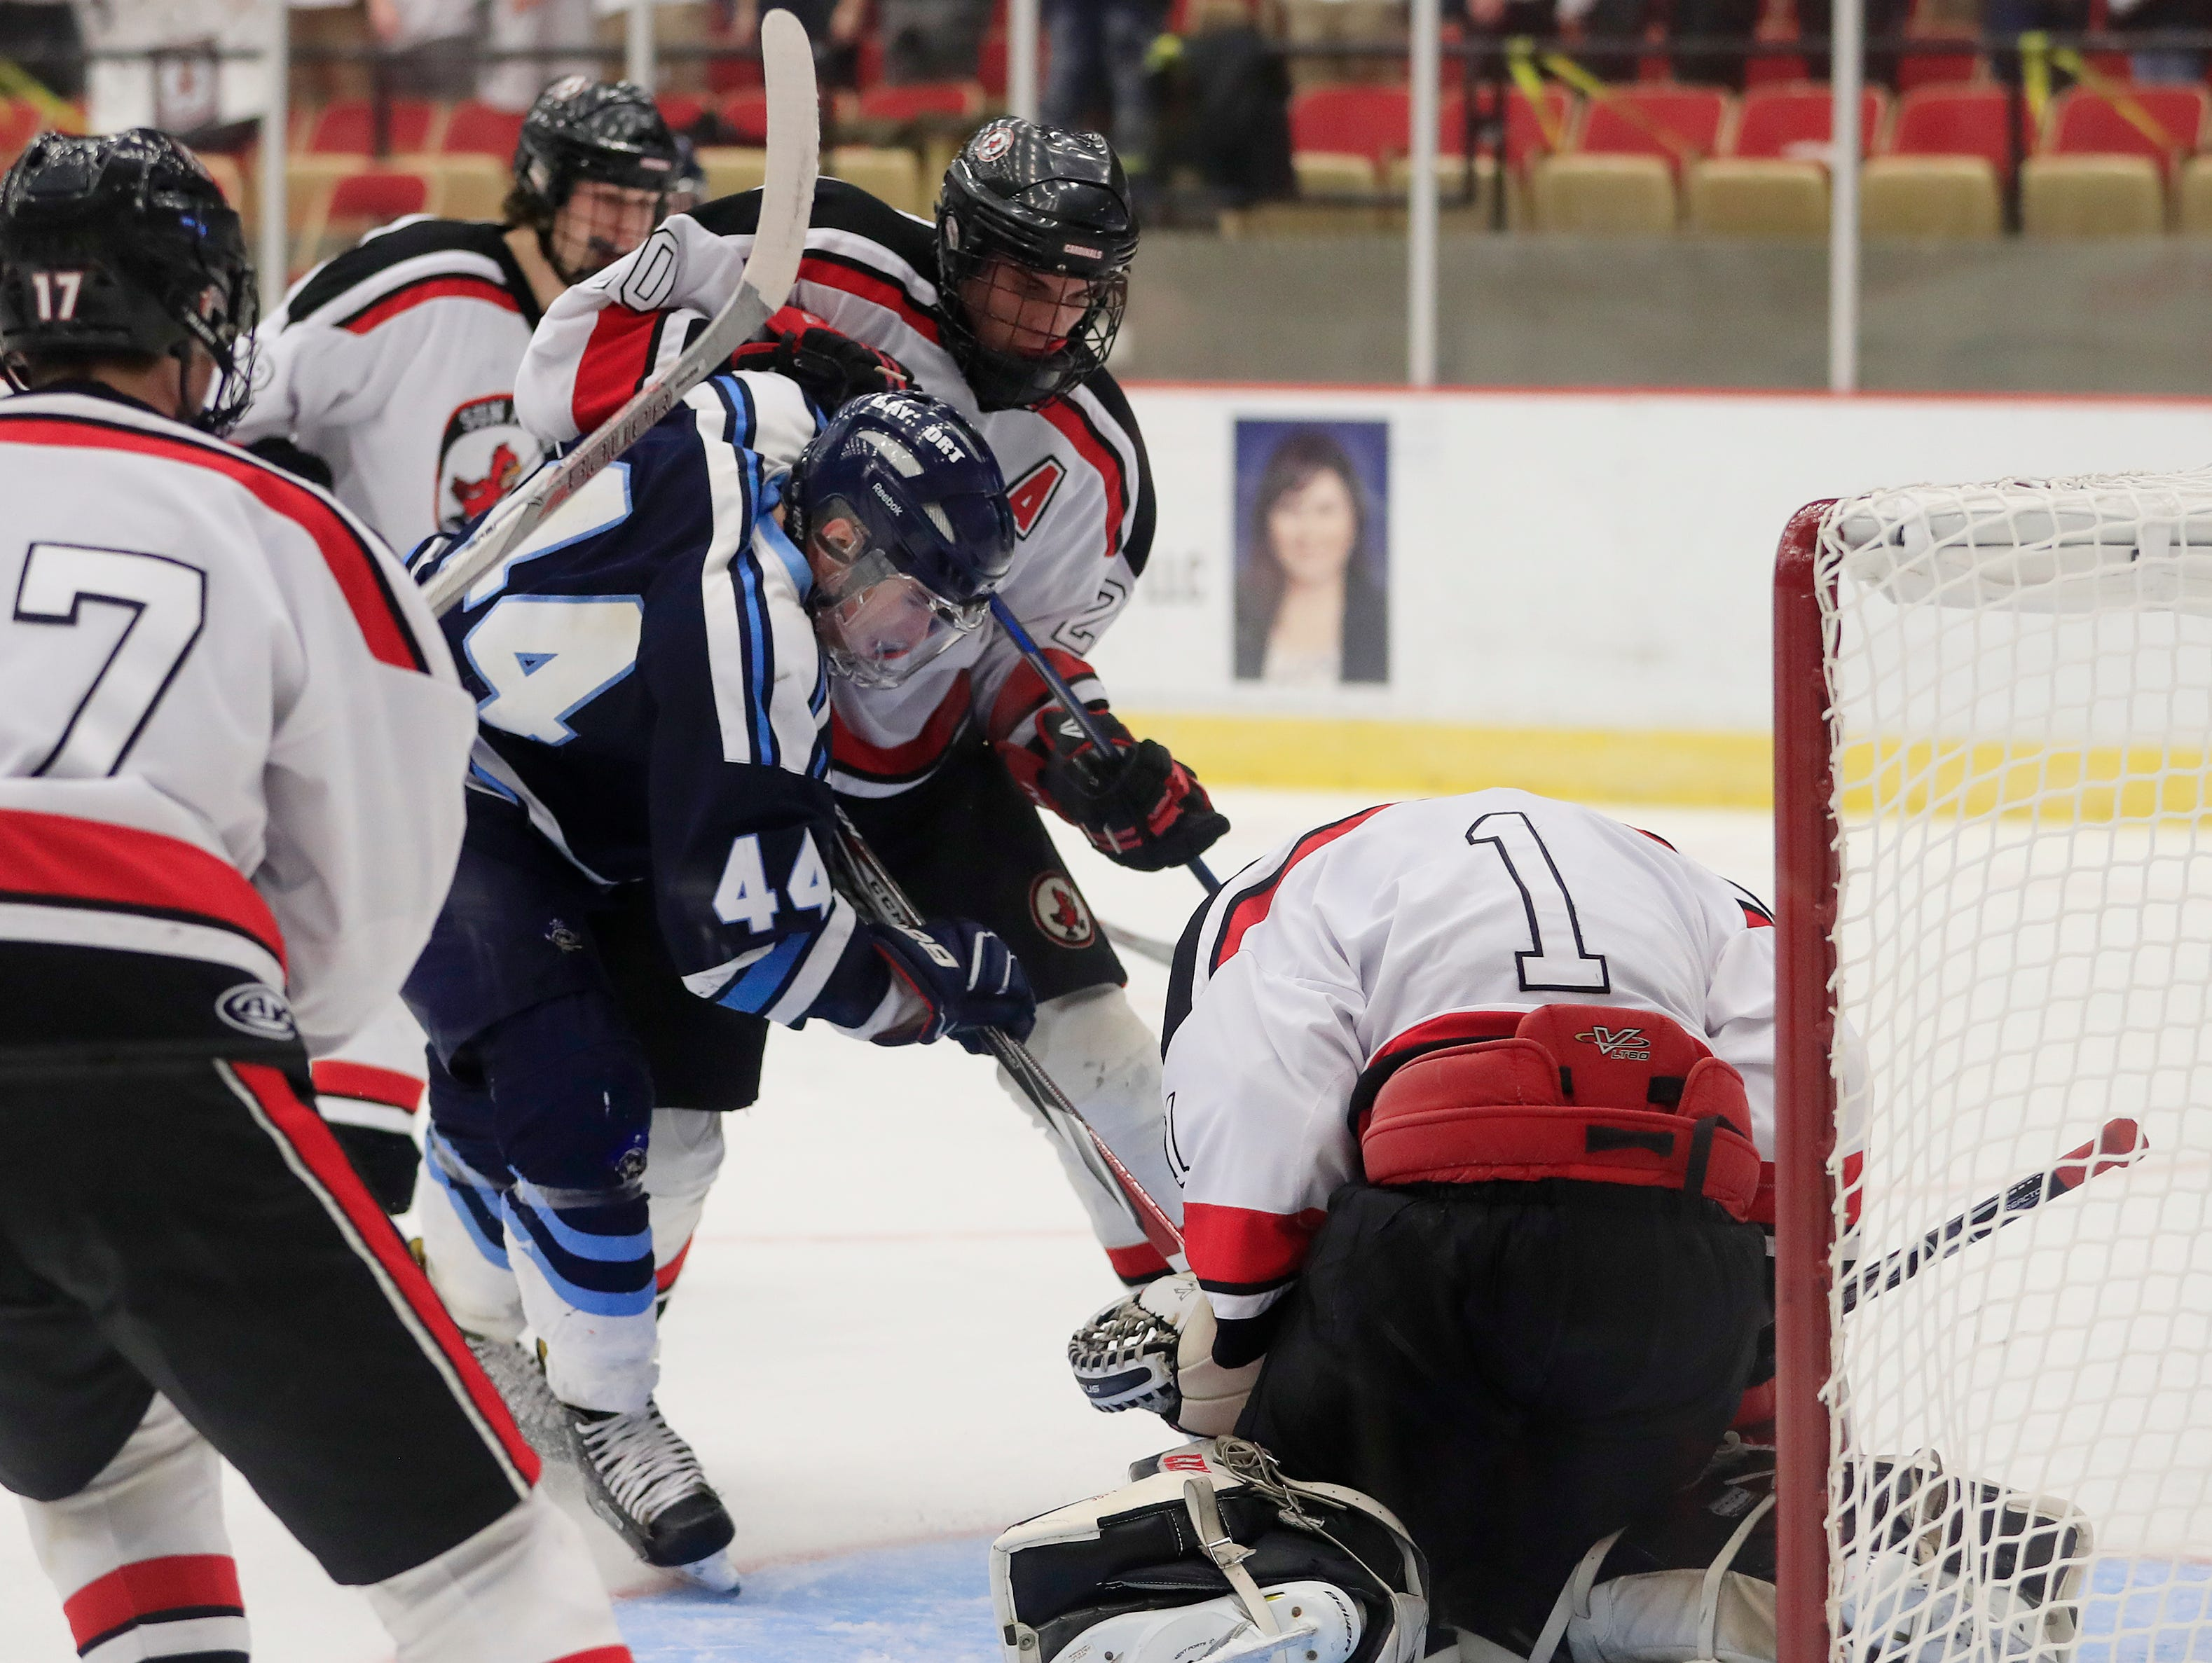 Bay Port Pirates forward Max Moore (44) fights for the puck in front of the net against Sun Prairie Cardinals defenseman Noah Nehmer (20) in a quarterfinal match at the 2017 State Hockey Tournament at Veterans Memorial Coliseum on Thursday, March 2, 2017, in Madison, Wis. Sun Prairie won the match, 3-2. Adam Wesley/USA TODAY NETWORK-Wisconsin